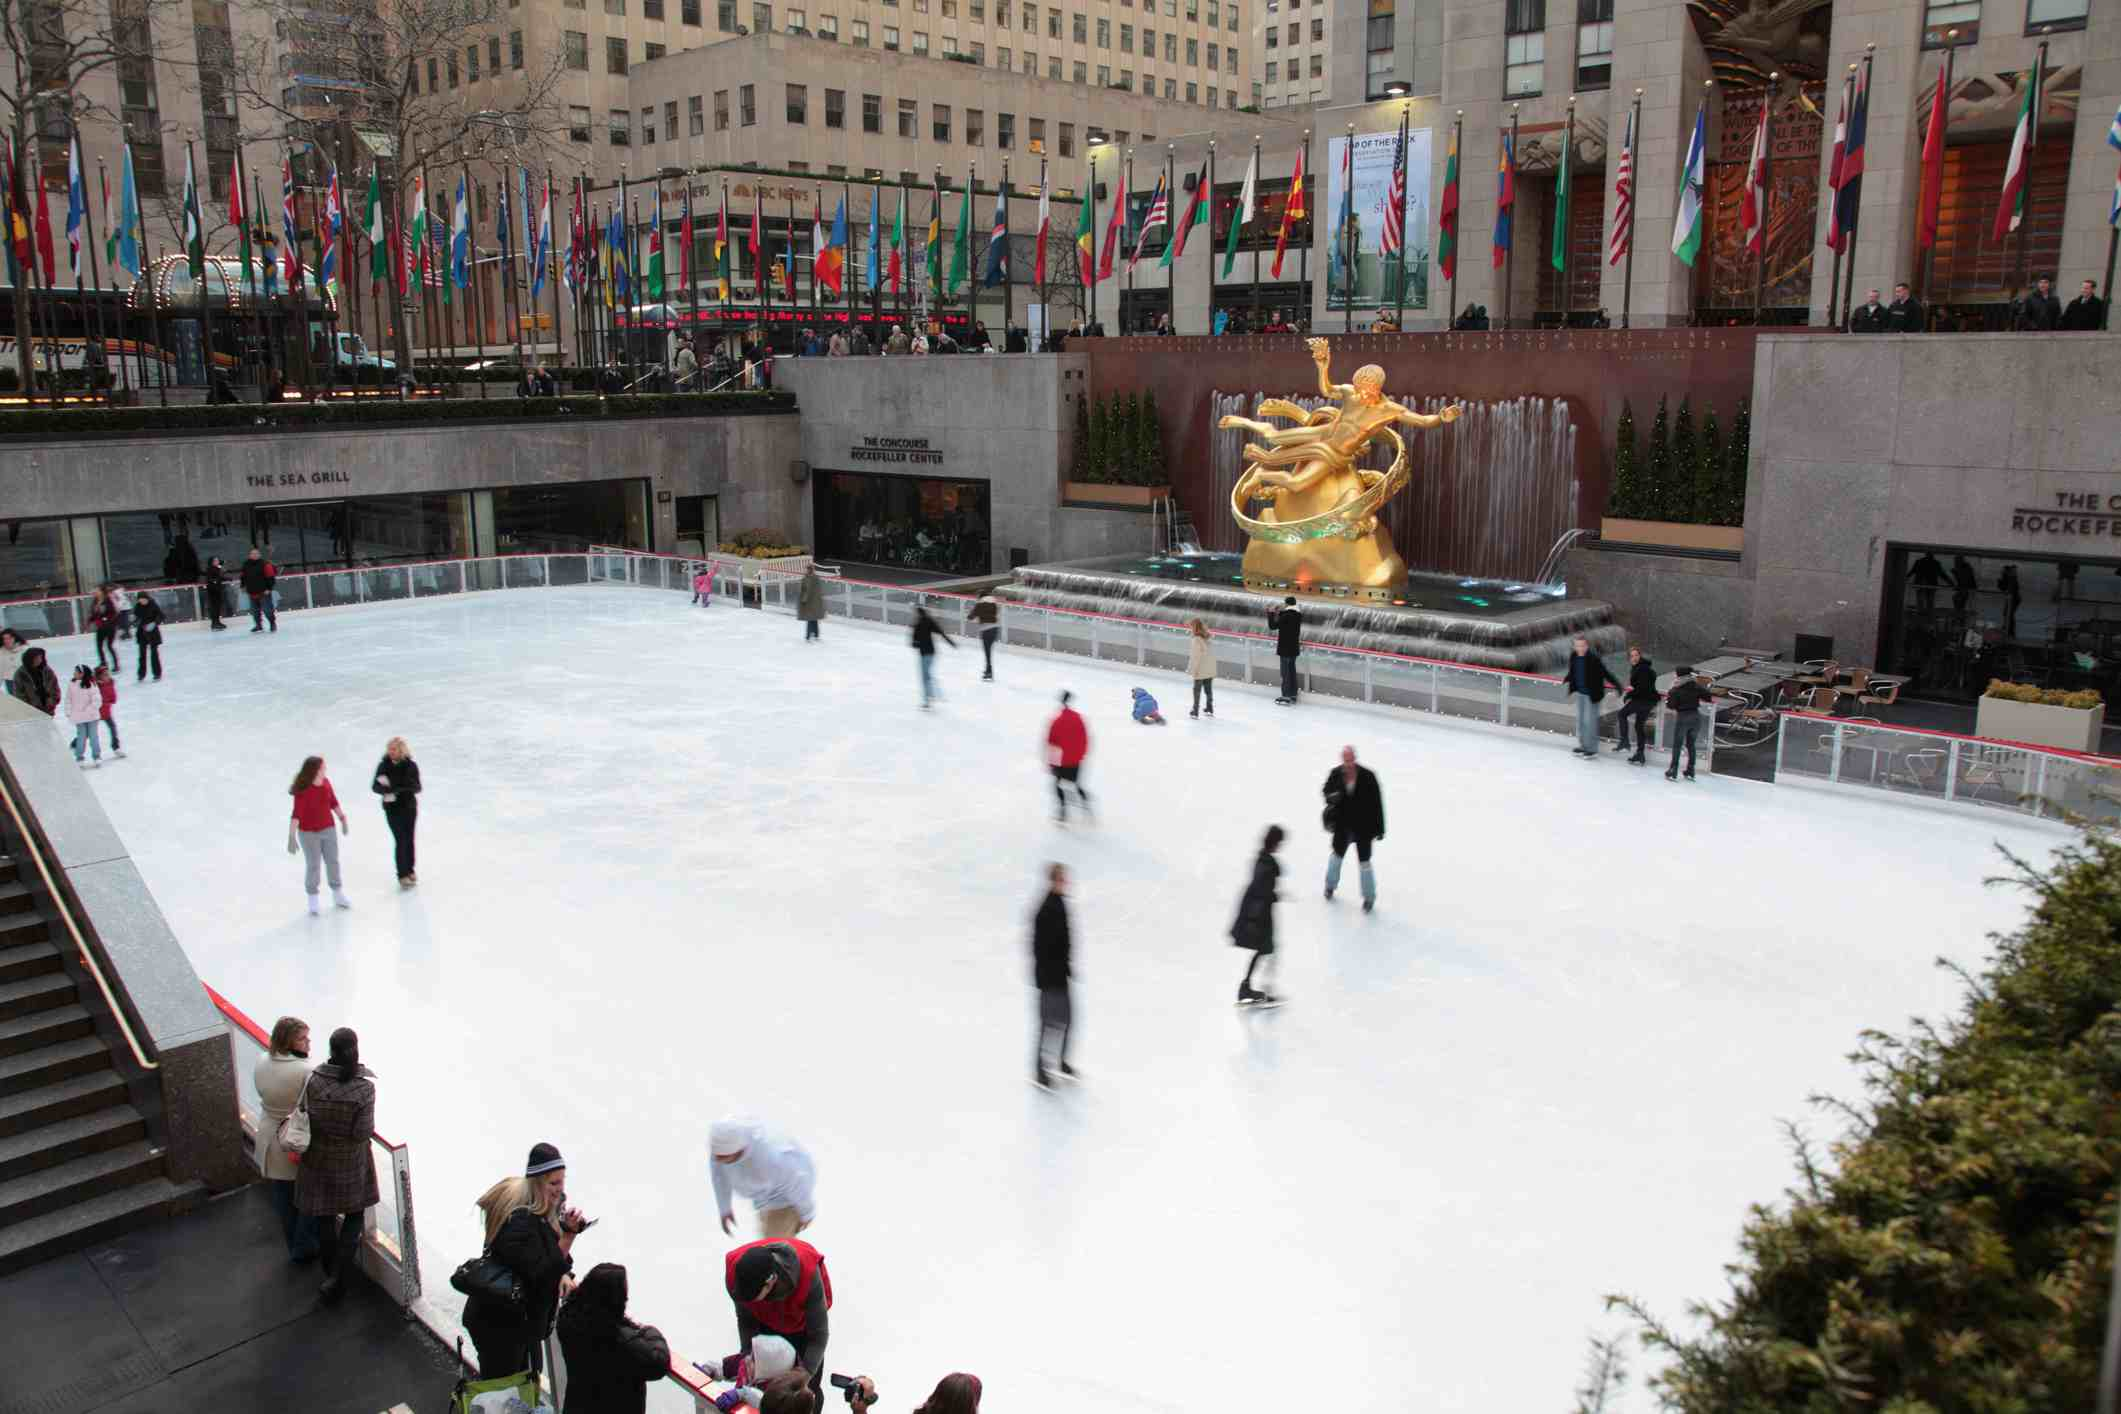 Ice skating rink at the Rockefeller Center with the statue of Prometheus in the back, New York City, New York State, USA